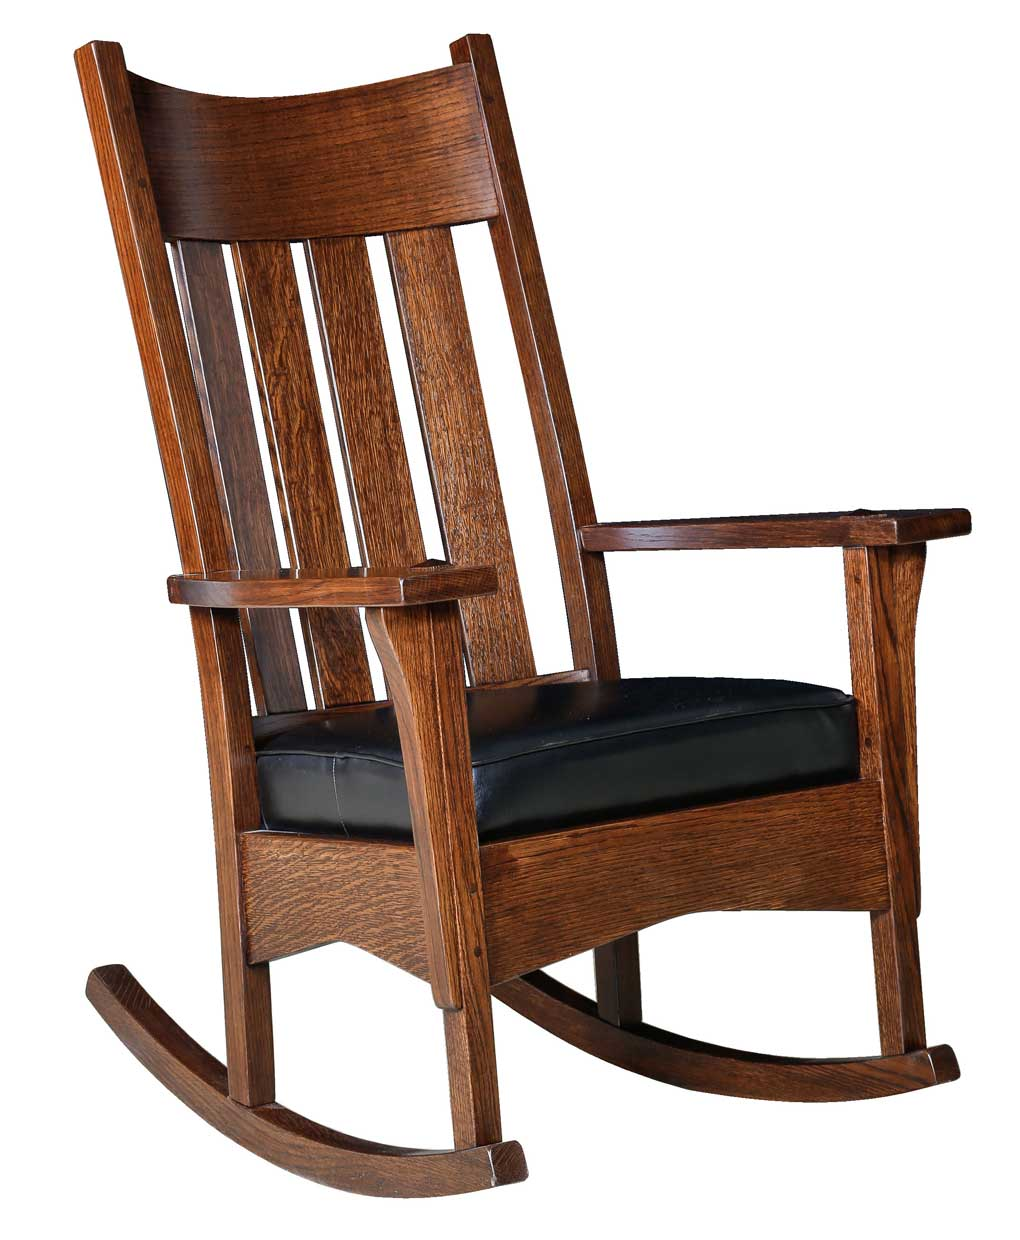 5968 also C88 as well Rocking Chair With Footrest Design also 46069 in addition Amis Wood Finish. on amish made outdoor furniture